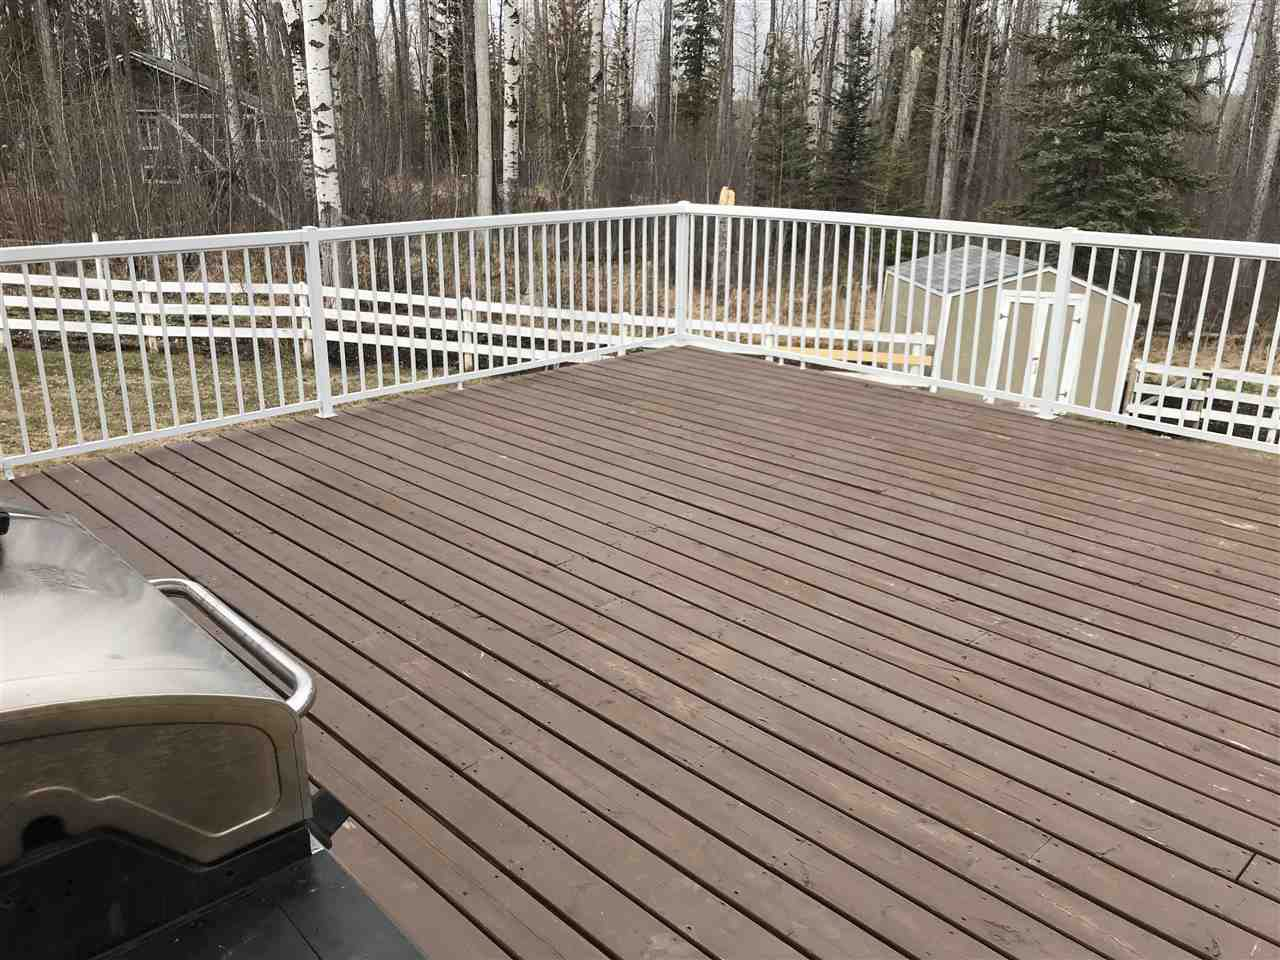 Photo 20: Photos: 13559 281 Road in Charlie Lake: Lakeshore House for sale (Fort St. John (Zone 60))  : MLS®# R2365322